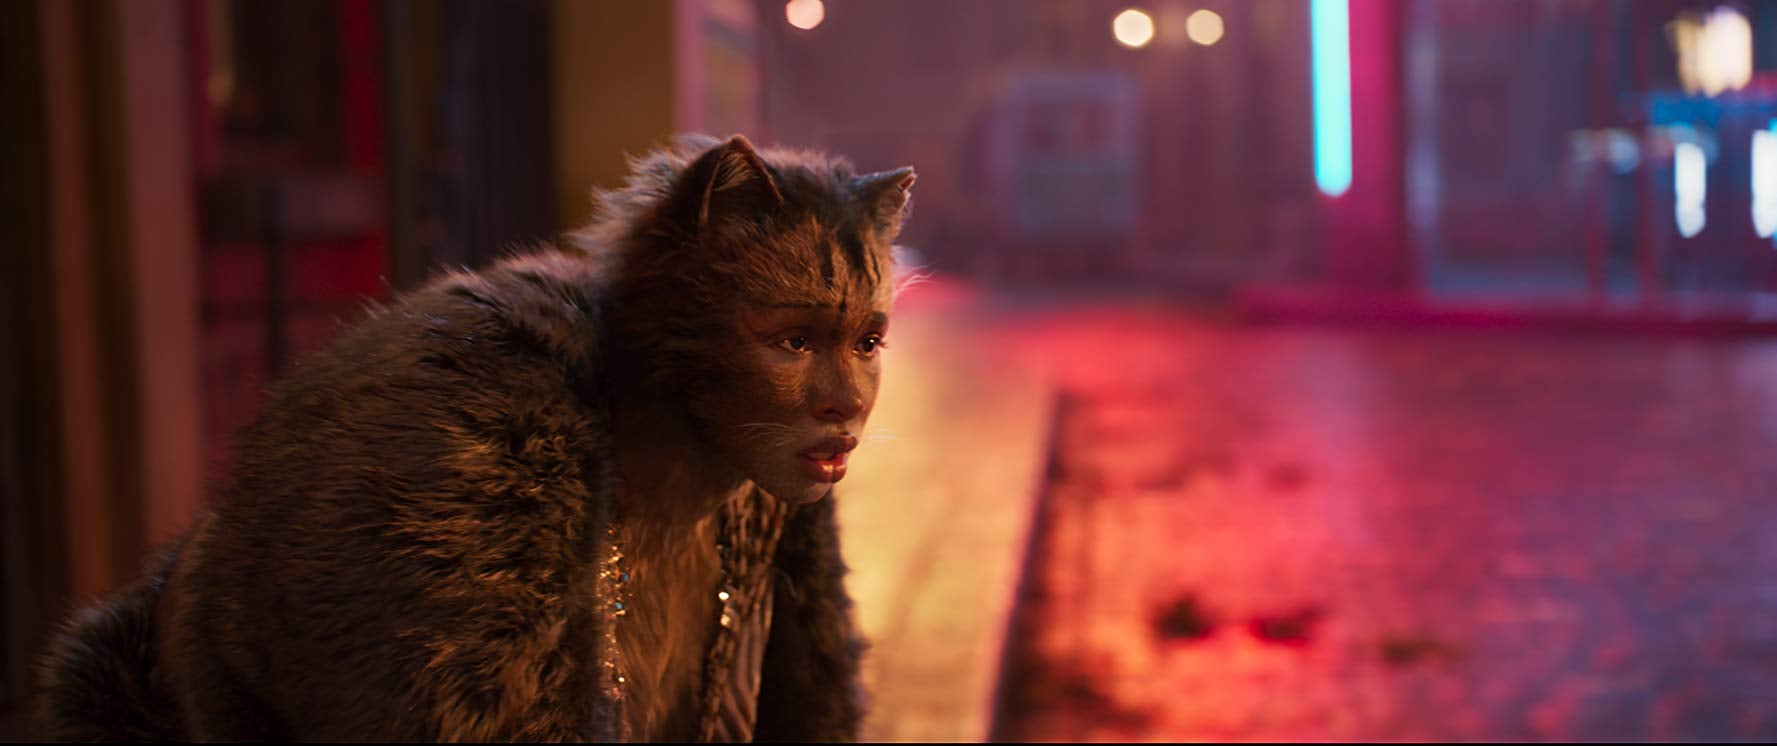 Cats Review: I Have Seen Sights No Human Should See